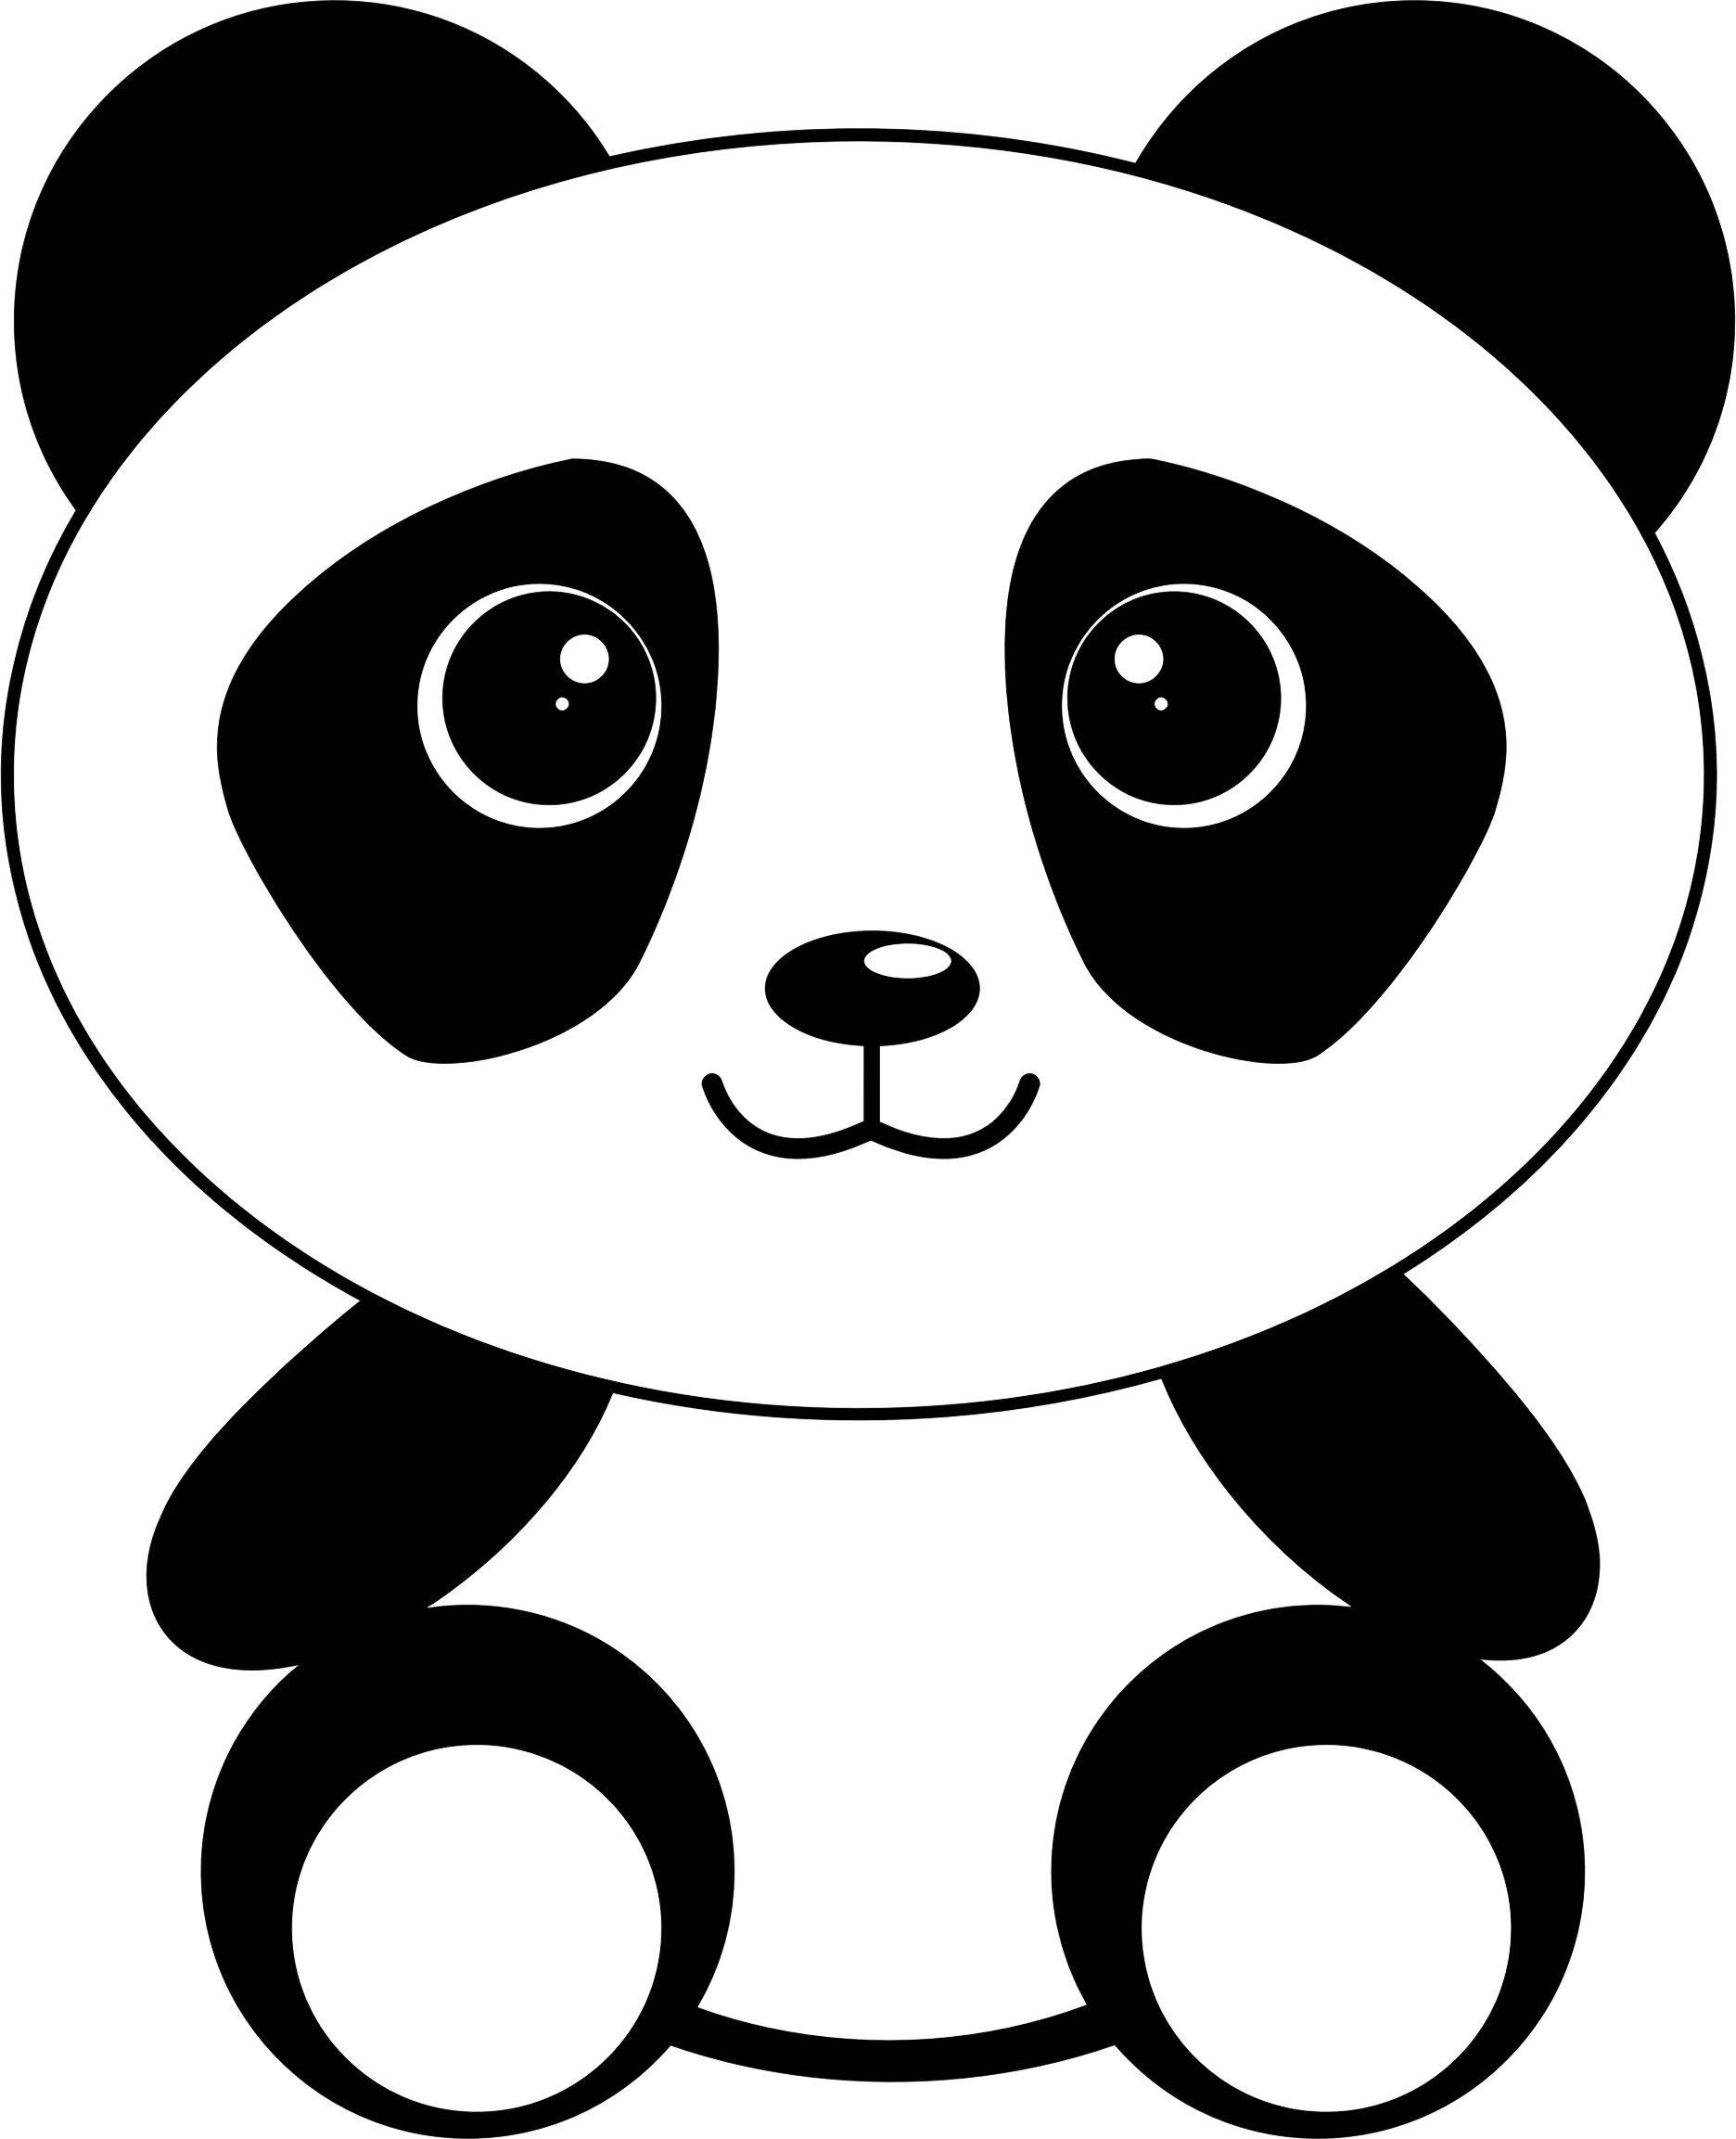 clipart cute cartoon panda rh openclipart org cute baby panda cartoon pictures Cute Cartoon Pandas with Mustaches